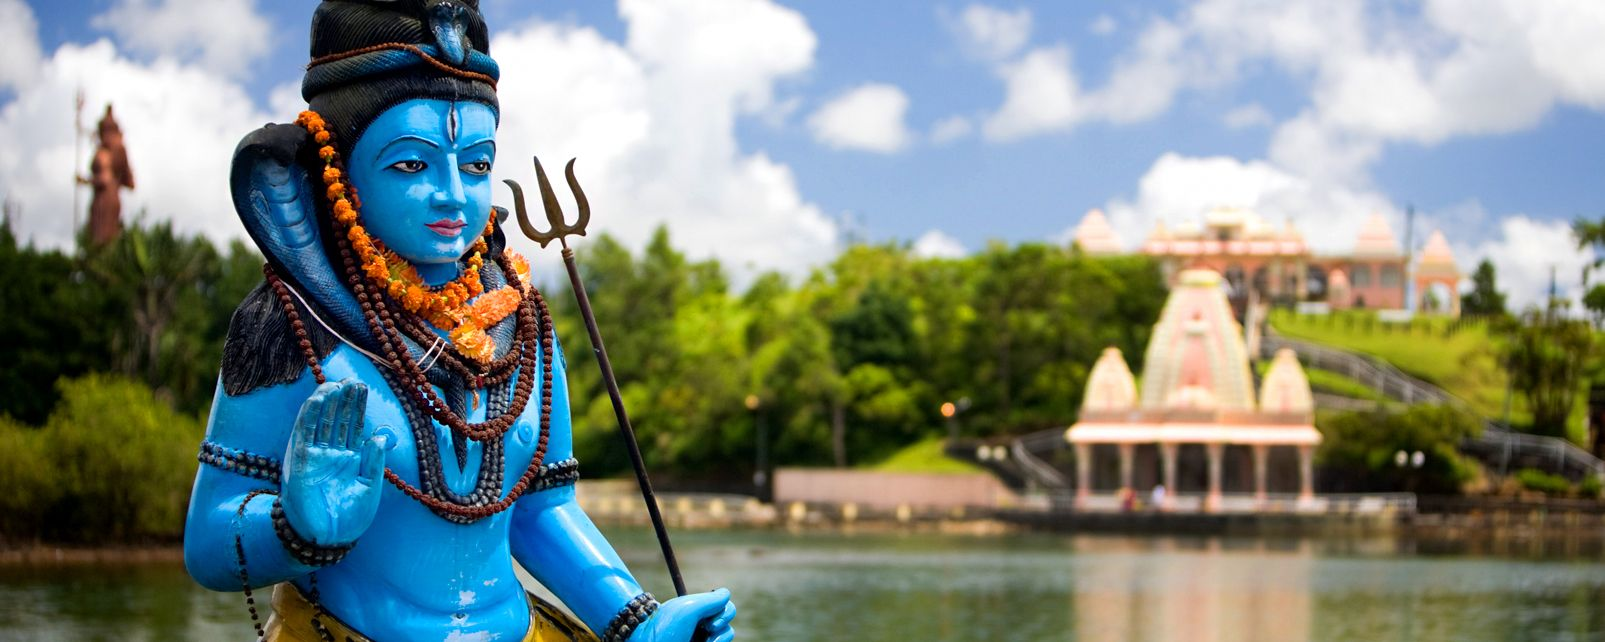 Grand Bassin is surrounded by candy-coloured statues of gods and Hindu temples  Credit: Easyvoyage